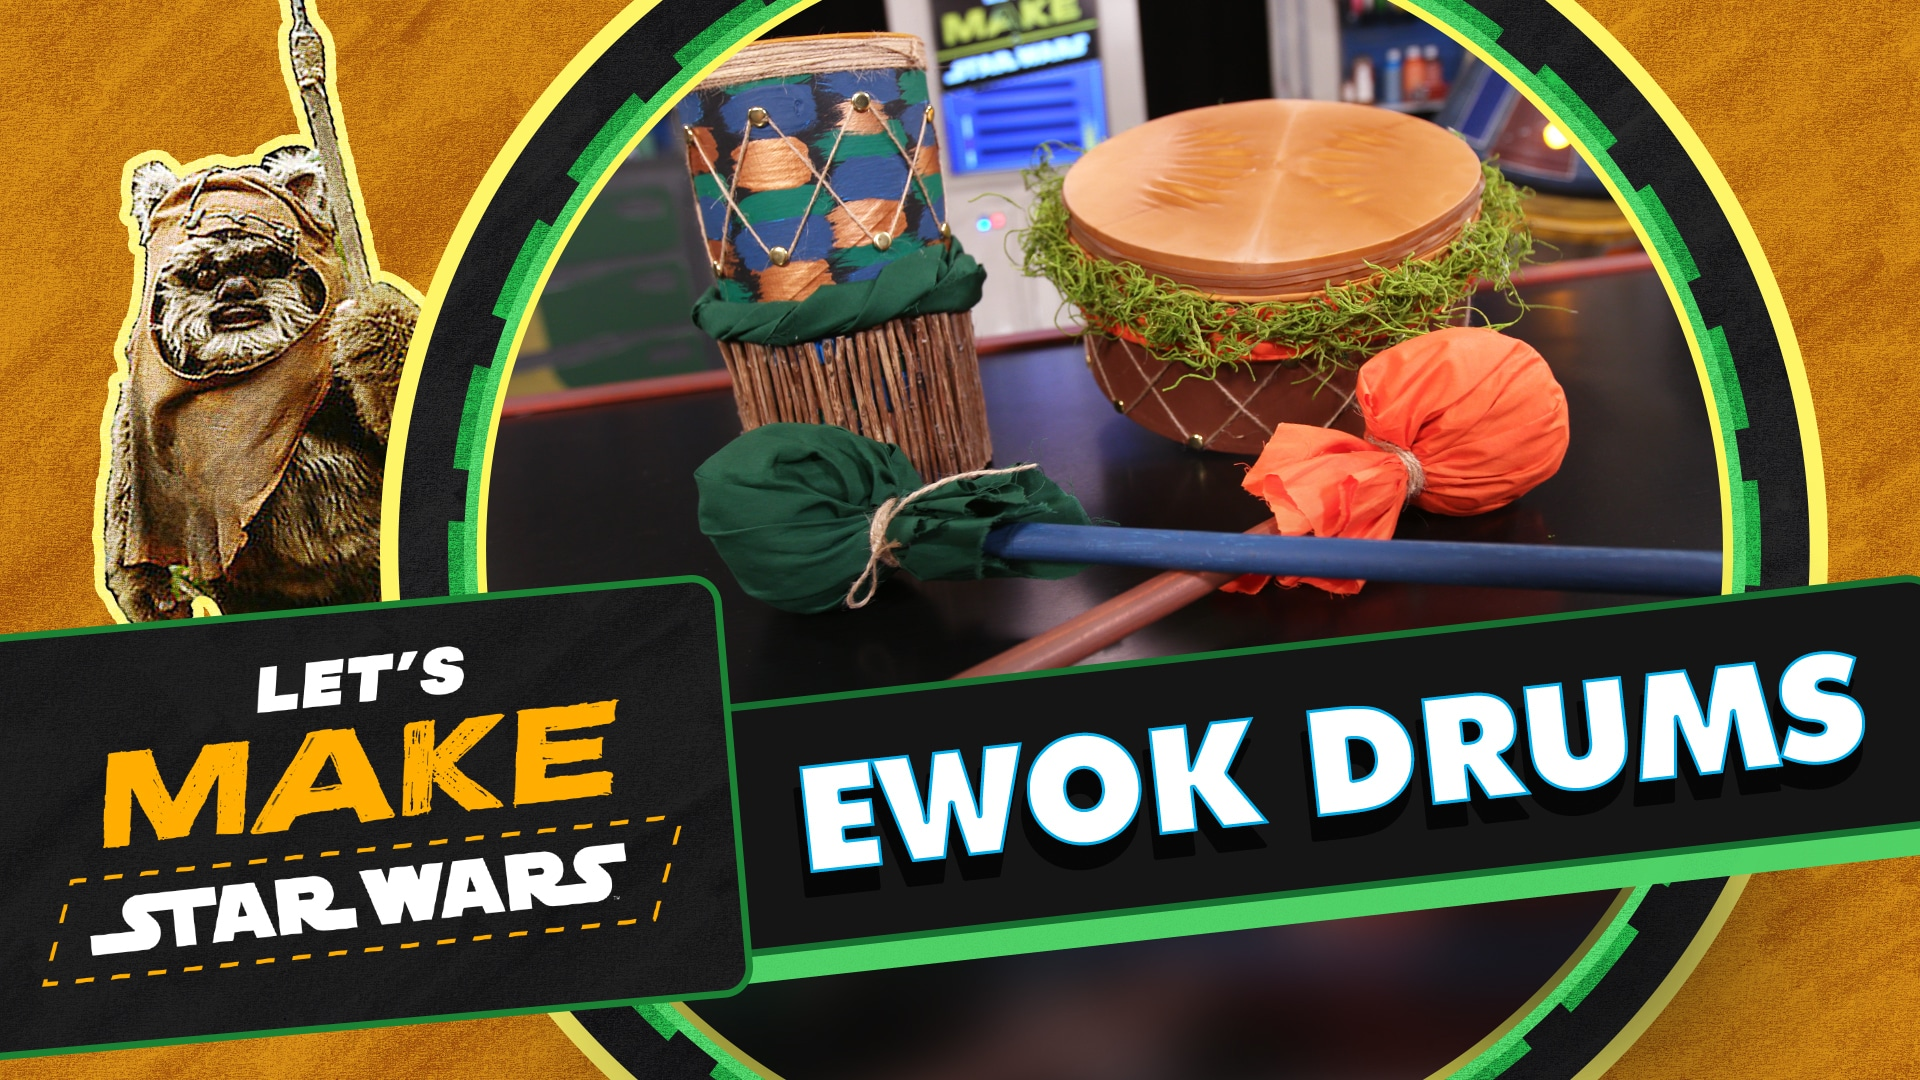 How to Make an Ewok Drum | Let's Make Star Wars